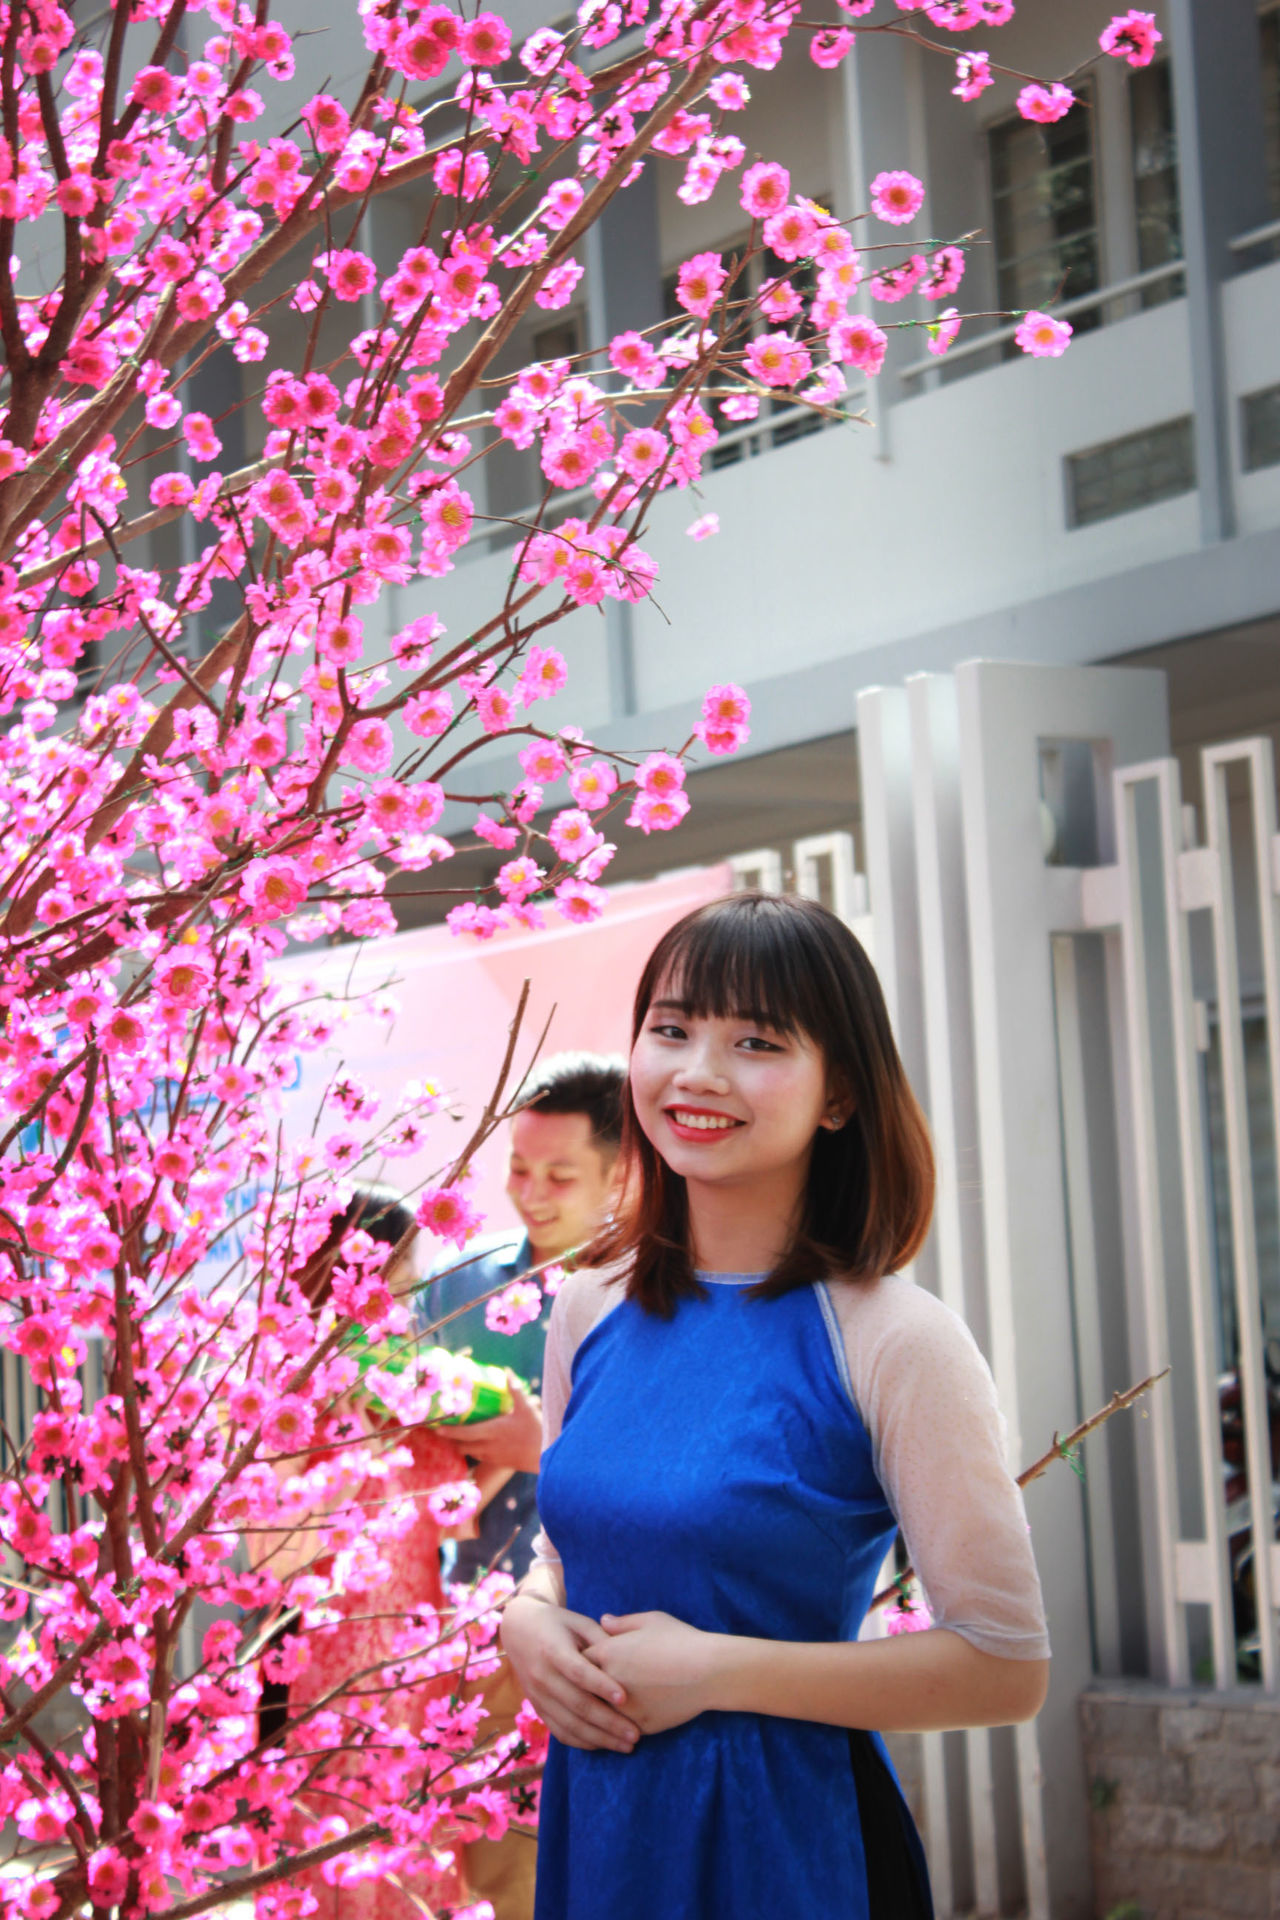 Child Childhood Children Only Communication Decoration Flower Growth Mid Adult Nature One Girl Only One Person Outdoors People People Watching Portrait Real People Smiling Tet 2017 Tet Holiday Tet In Saigon Tetholiday Tết Vietnam Vietnamese Vietnamesegirl